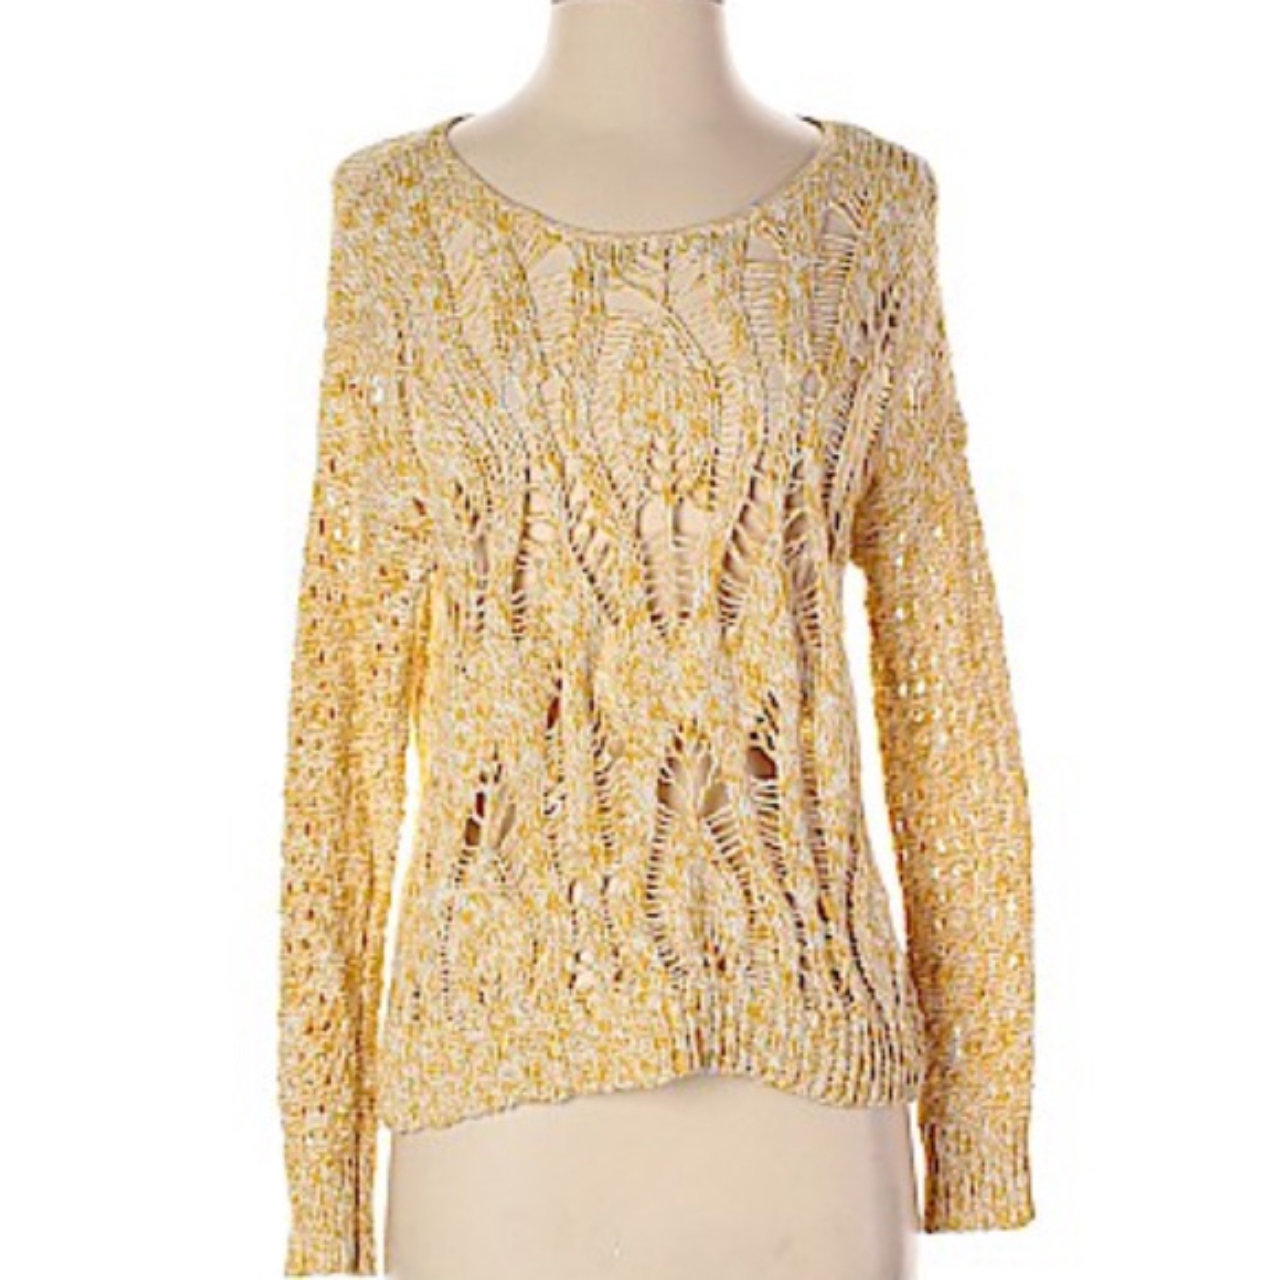 Product Image 1 - American Eagle Outfitters Yellow and